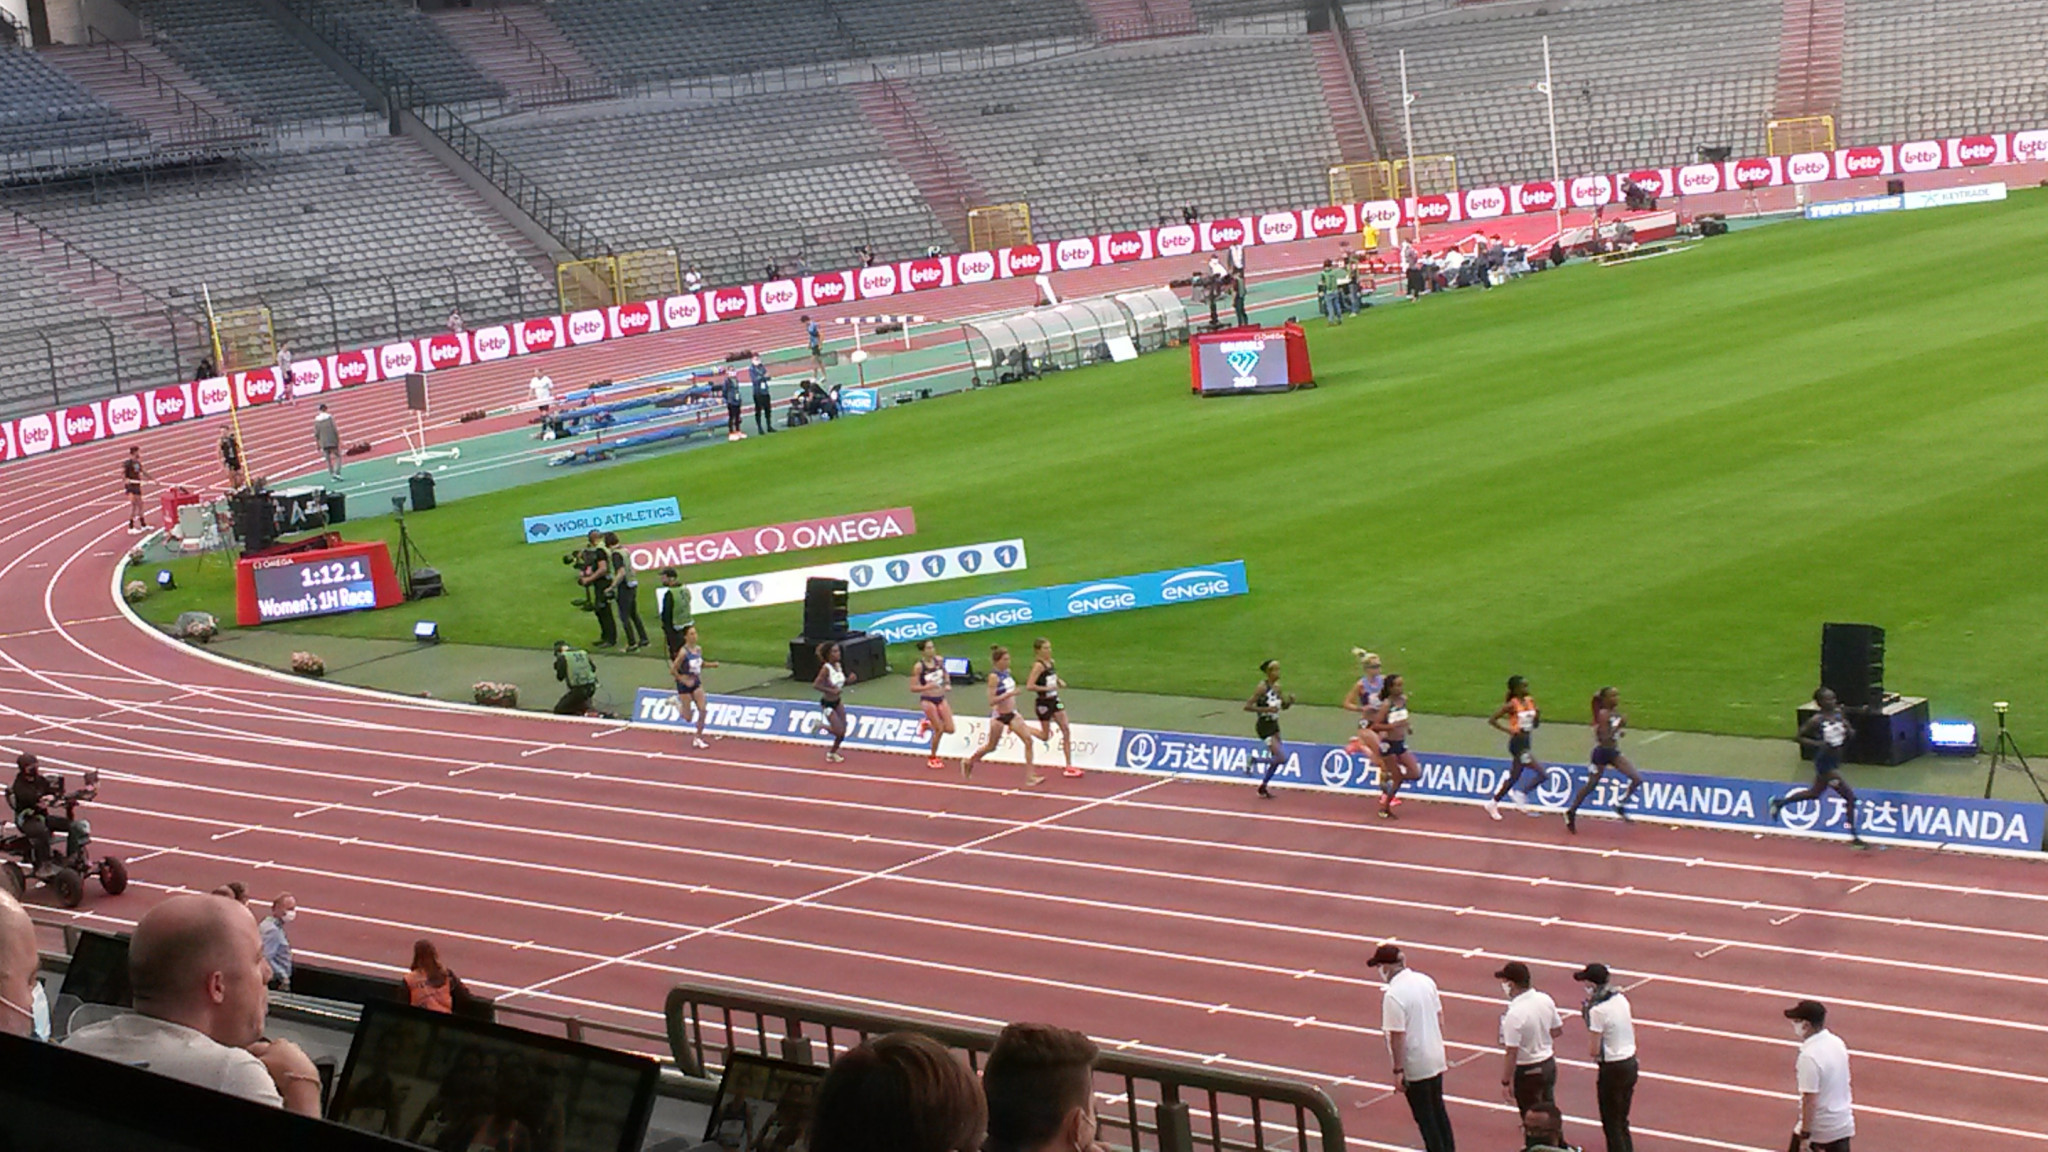 There were very few spectators at the Wanda Diamond League meeting in Brussels, but plenty of lights, noise and action ©ITG